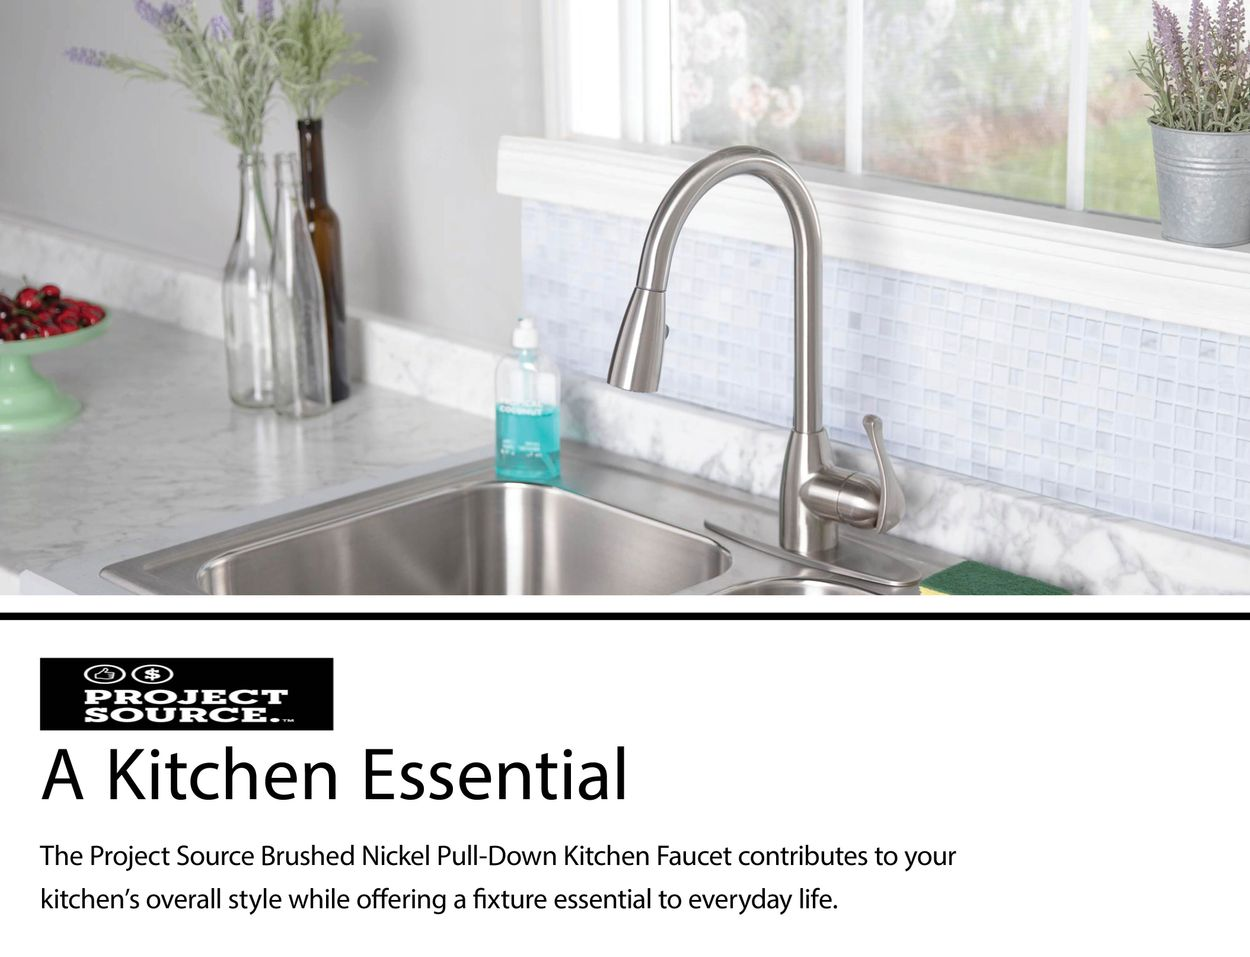 Brushed Nickel 1-handle Deck Mount Pull-down Kitchen Faucet